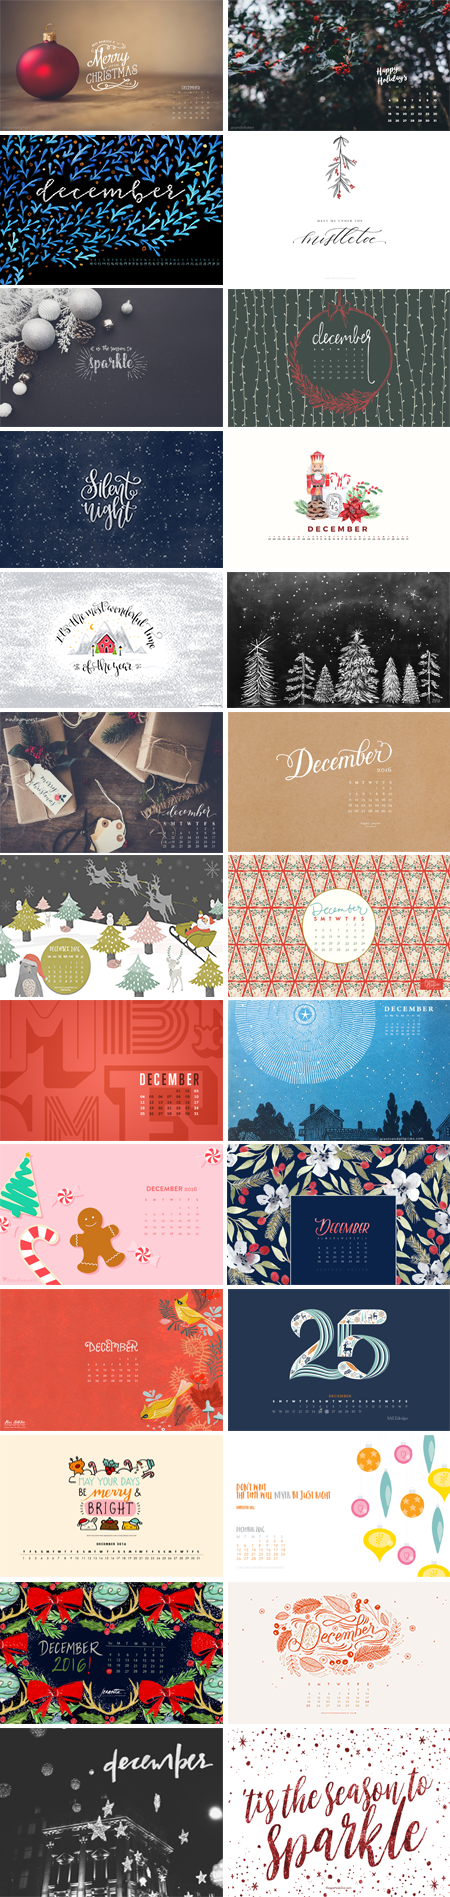 // December 2016 Wallpapers Round-up